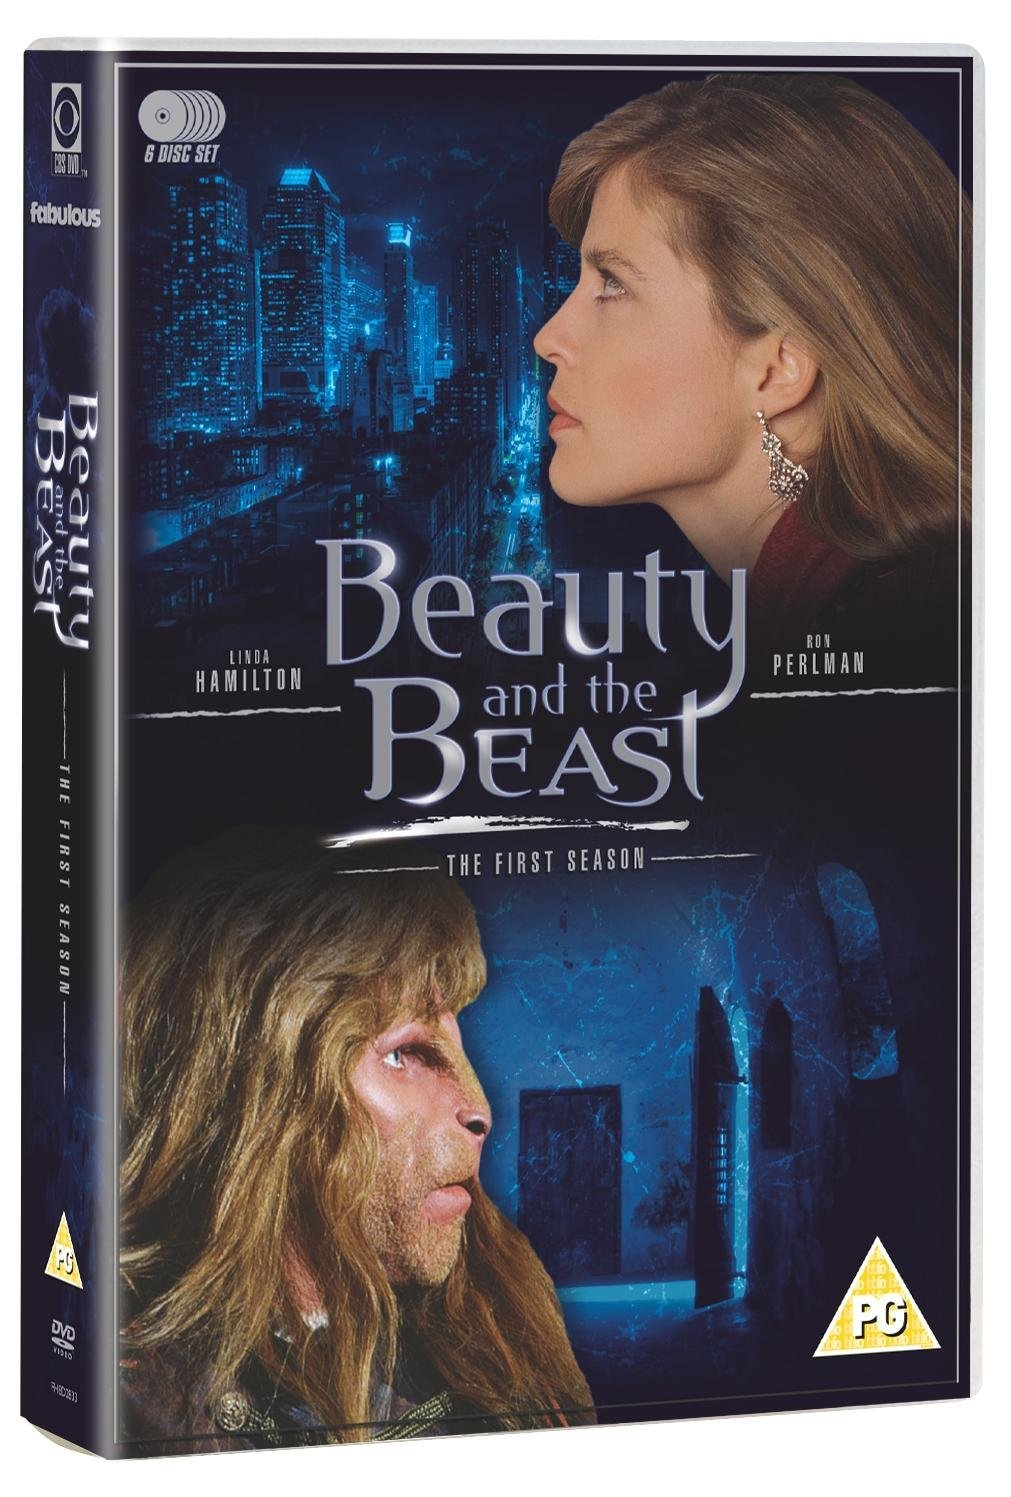 Beauty and the Beast - The First Season DVD 1987 Reino Unido ...